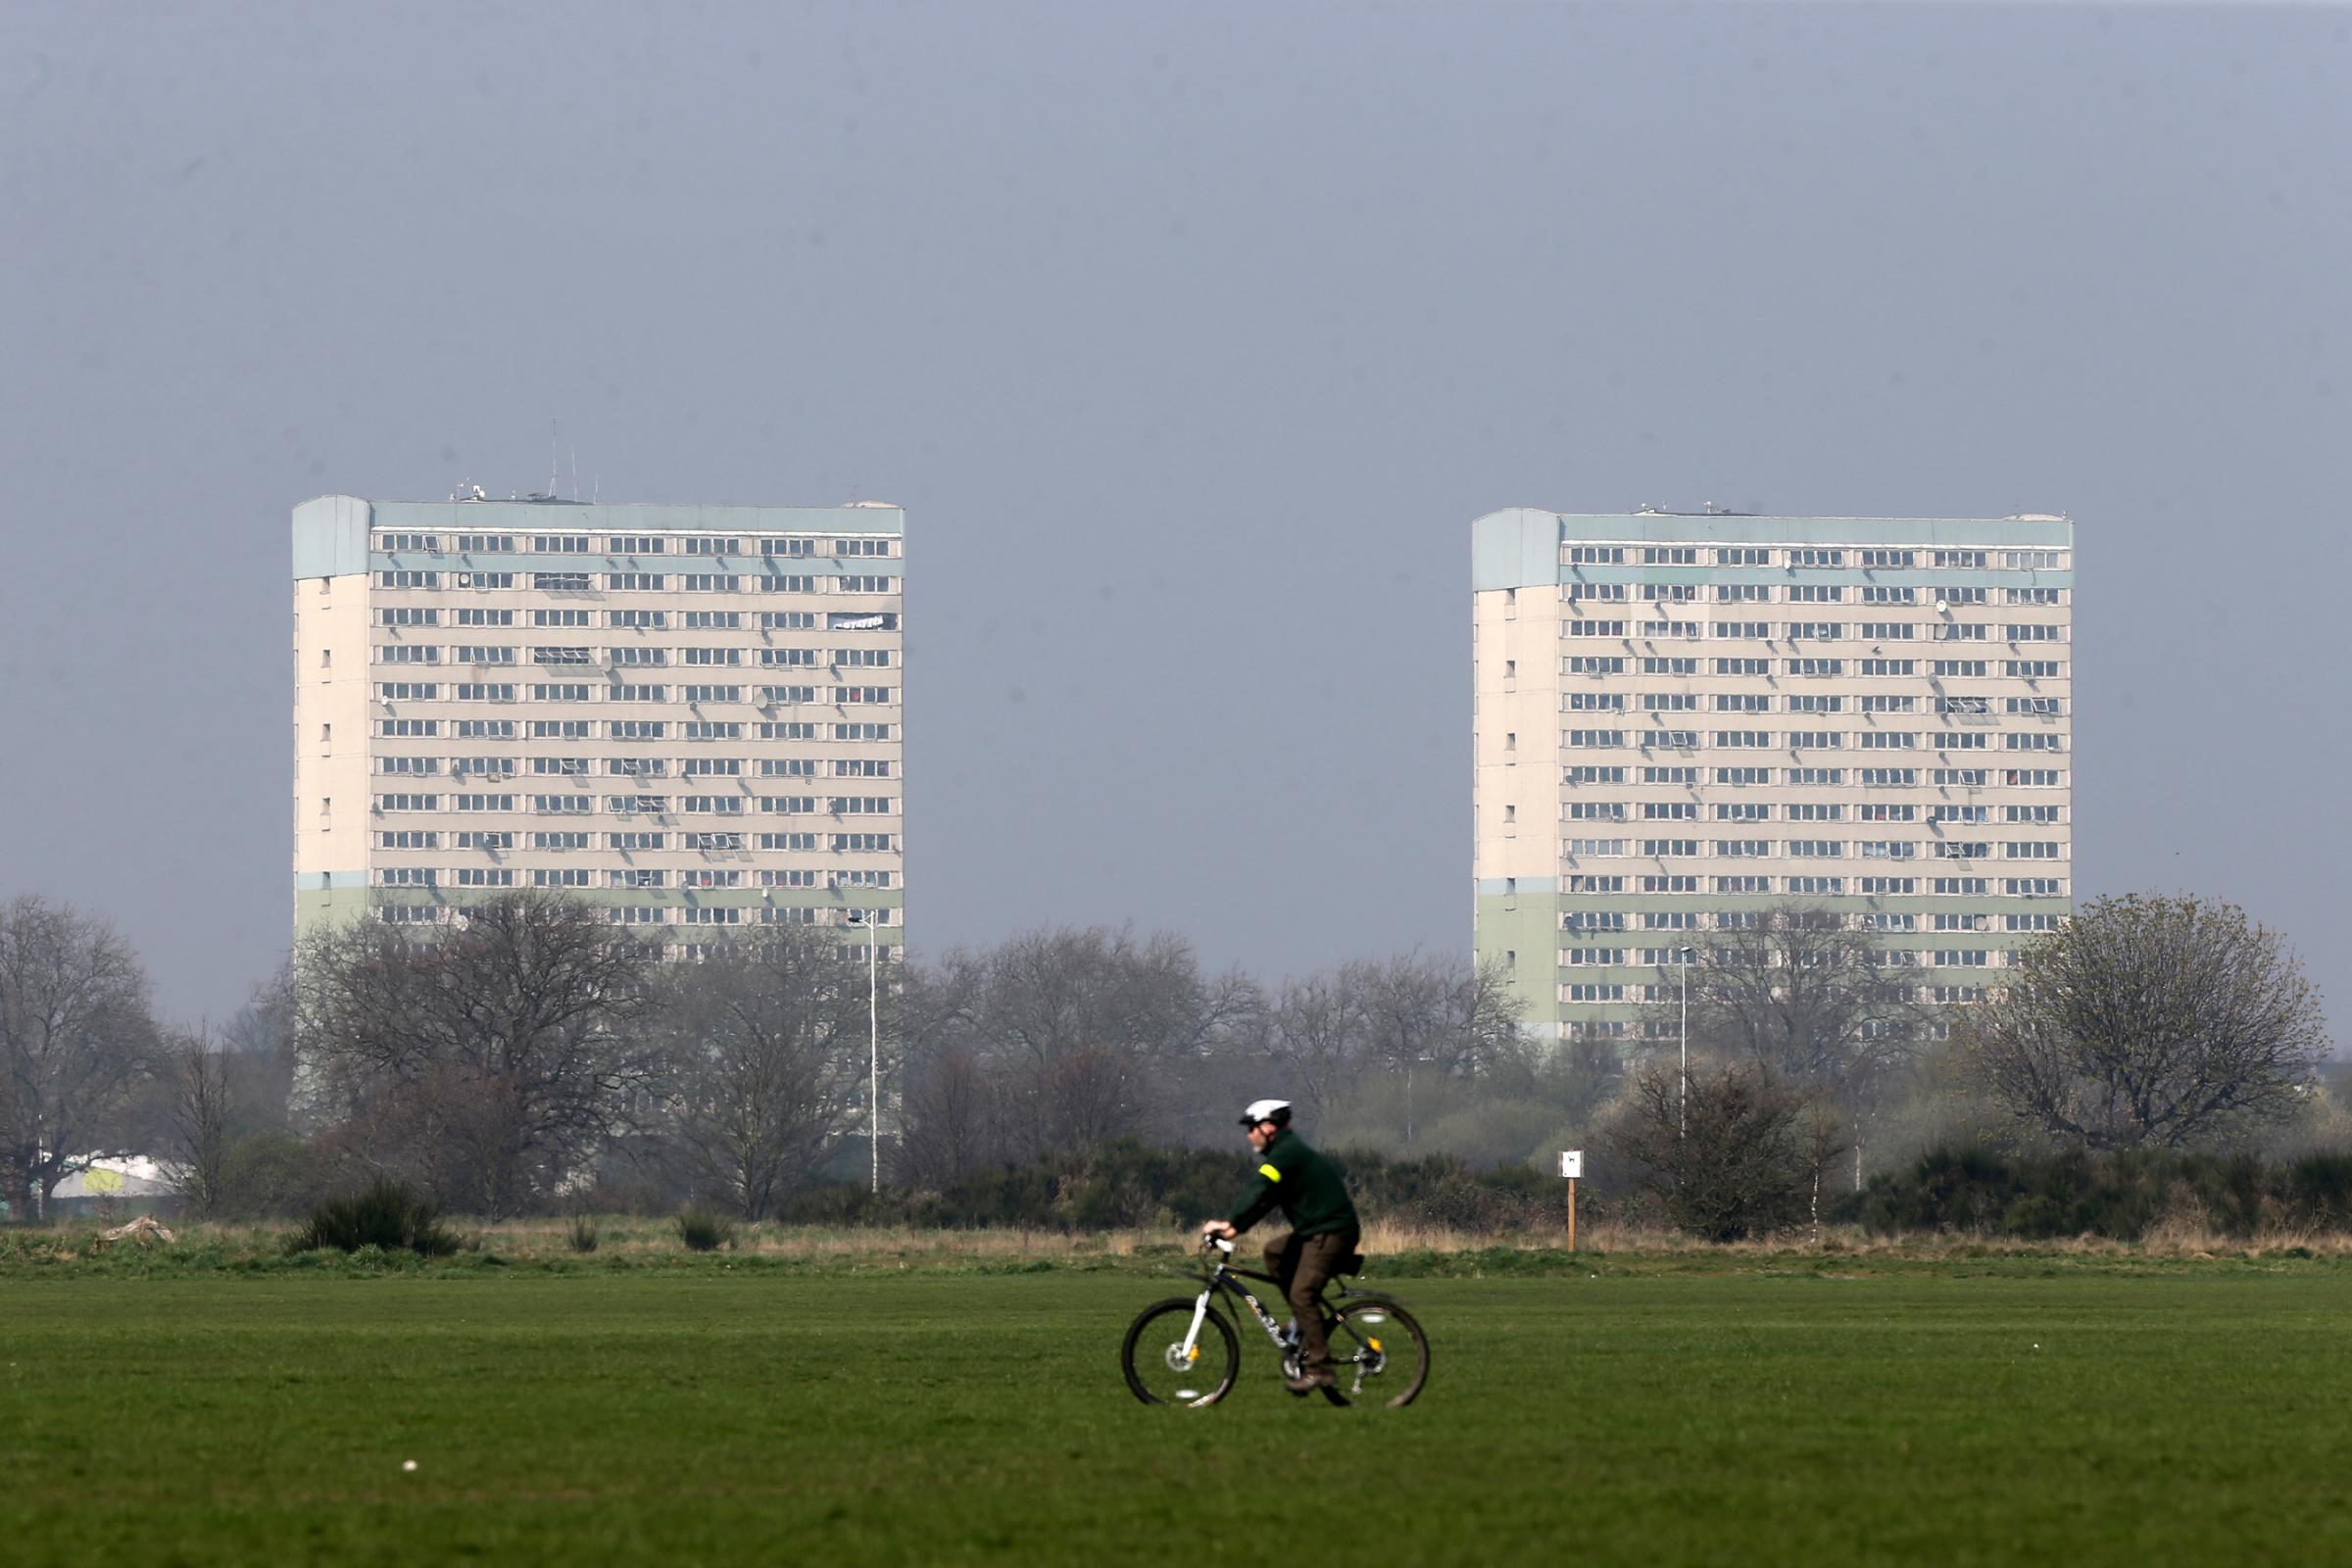 Fred Wigg and John Walsh Towers in Leytonstone seen from Wanstead Flats through the pollution/smog haze.